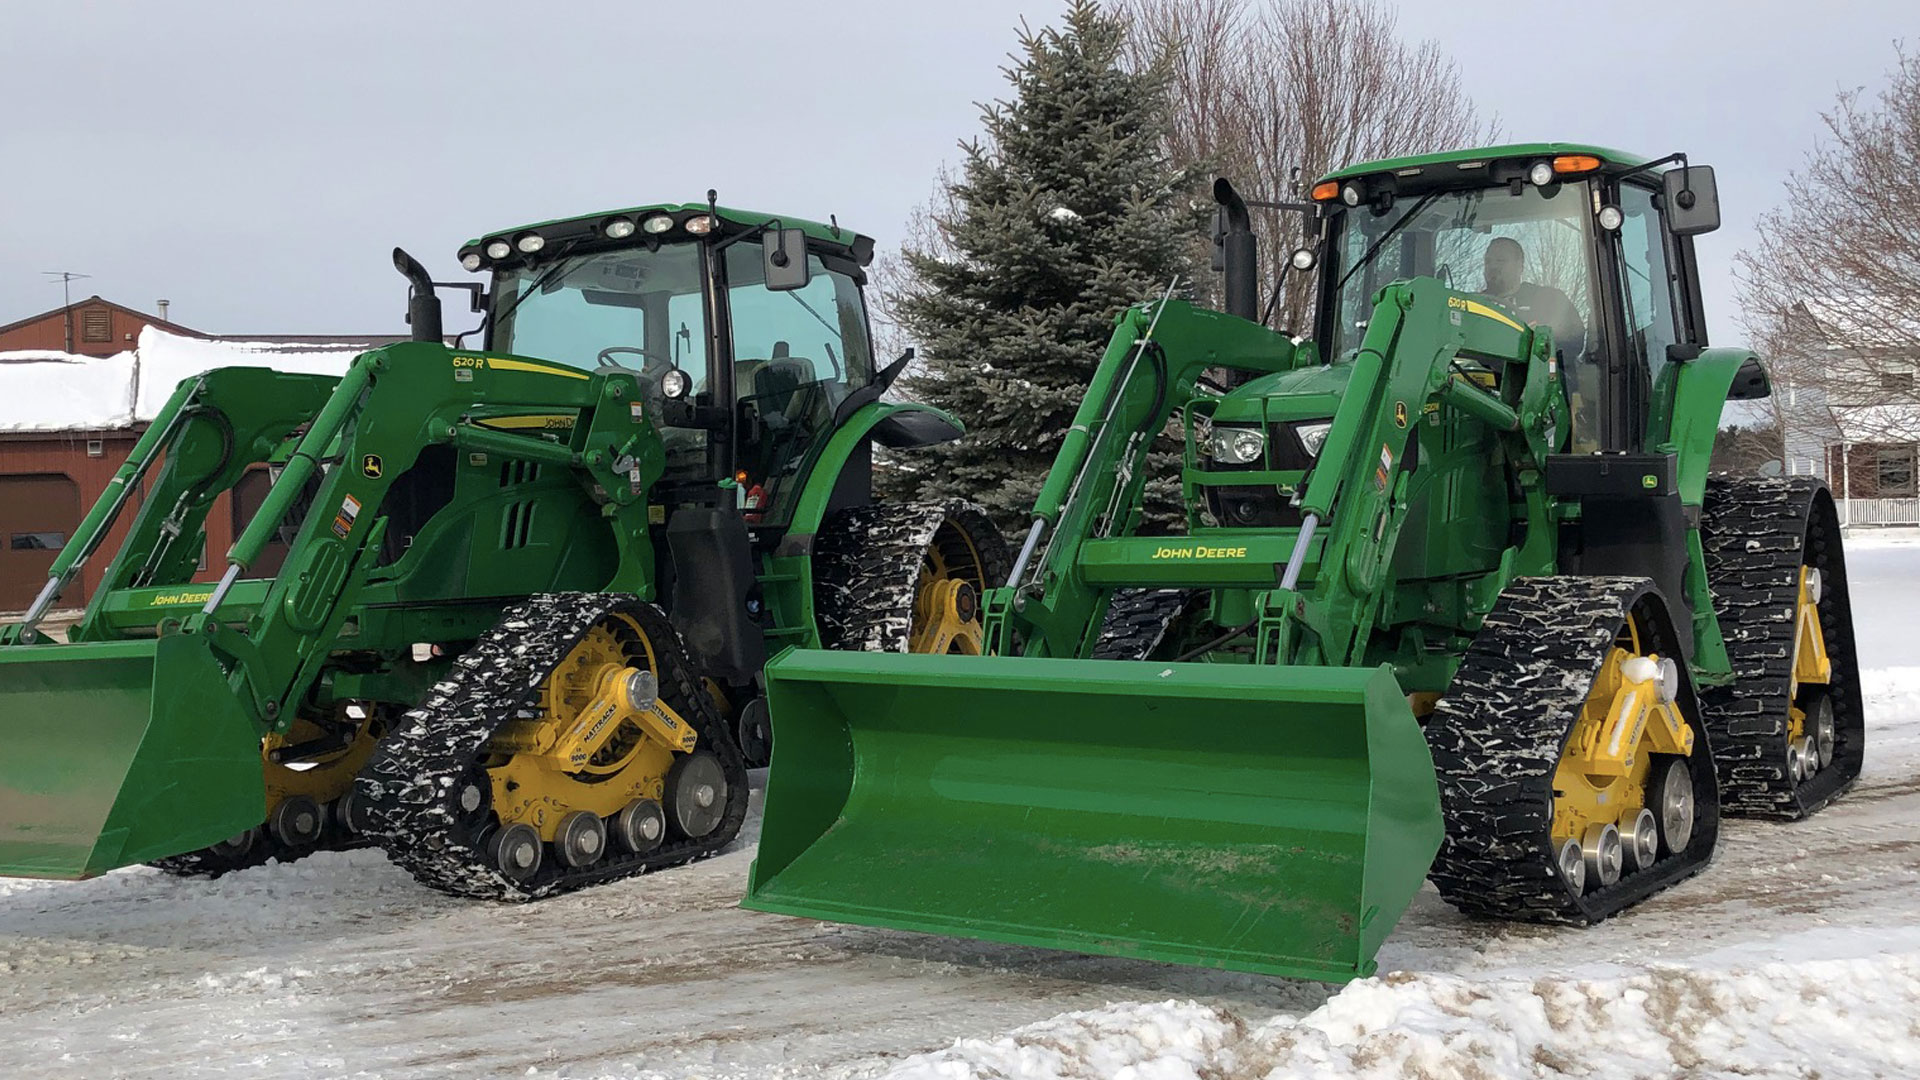 9000-LM Series Tracks on a John Deere 6120M